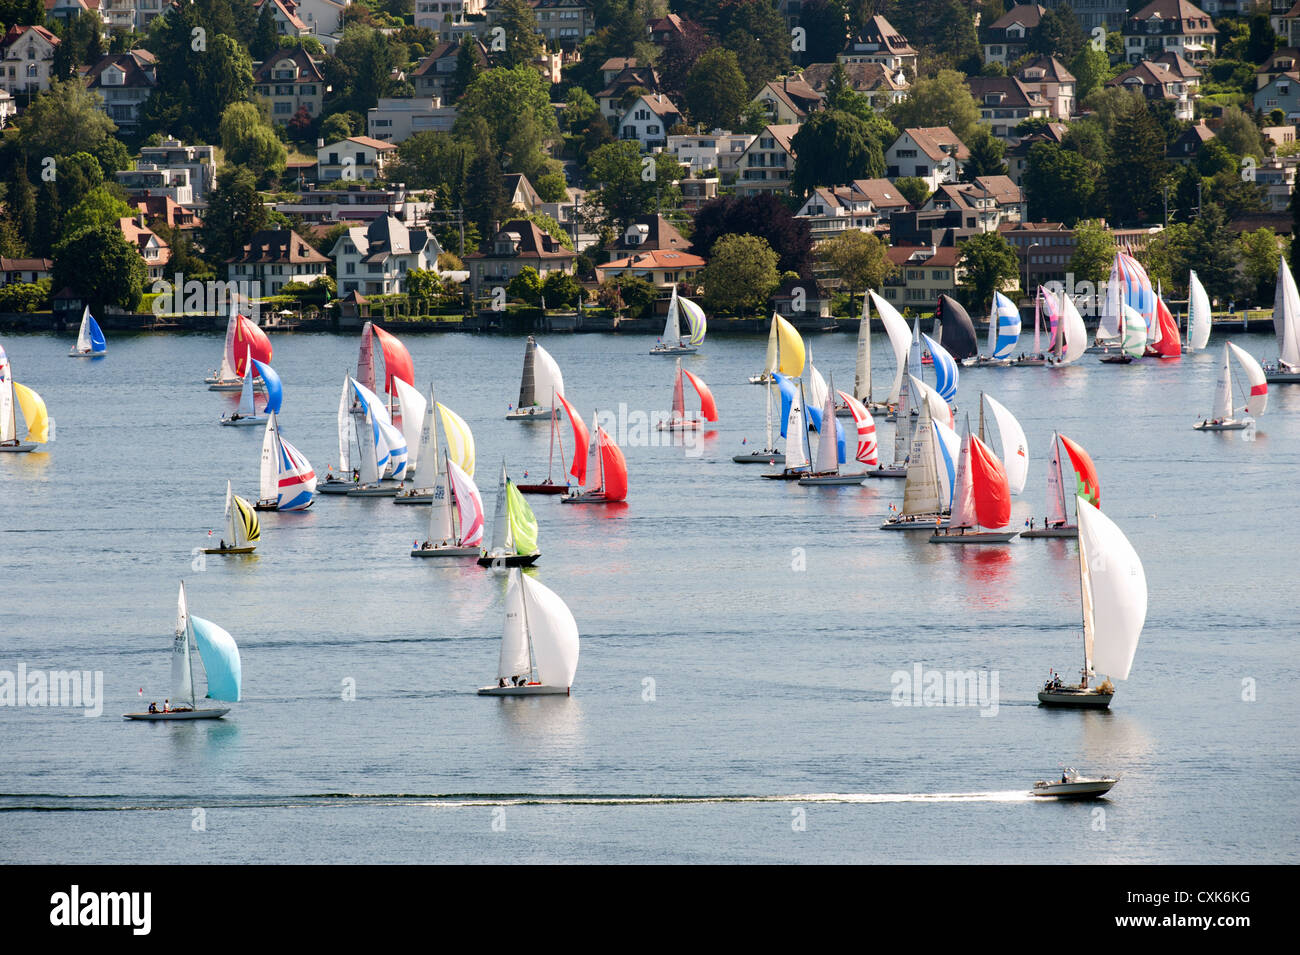 Sailing boats on lake Zurich, See, Regatta - Stock Image